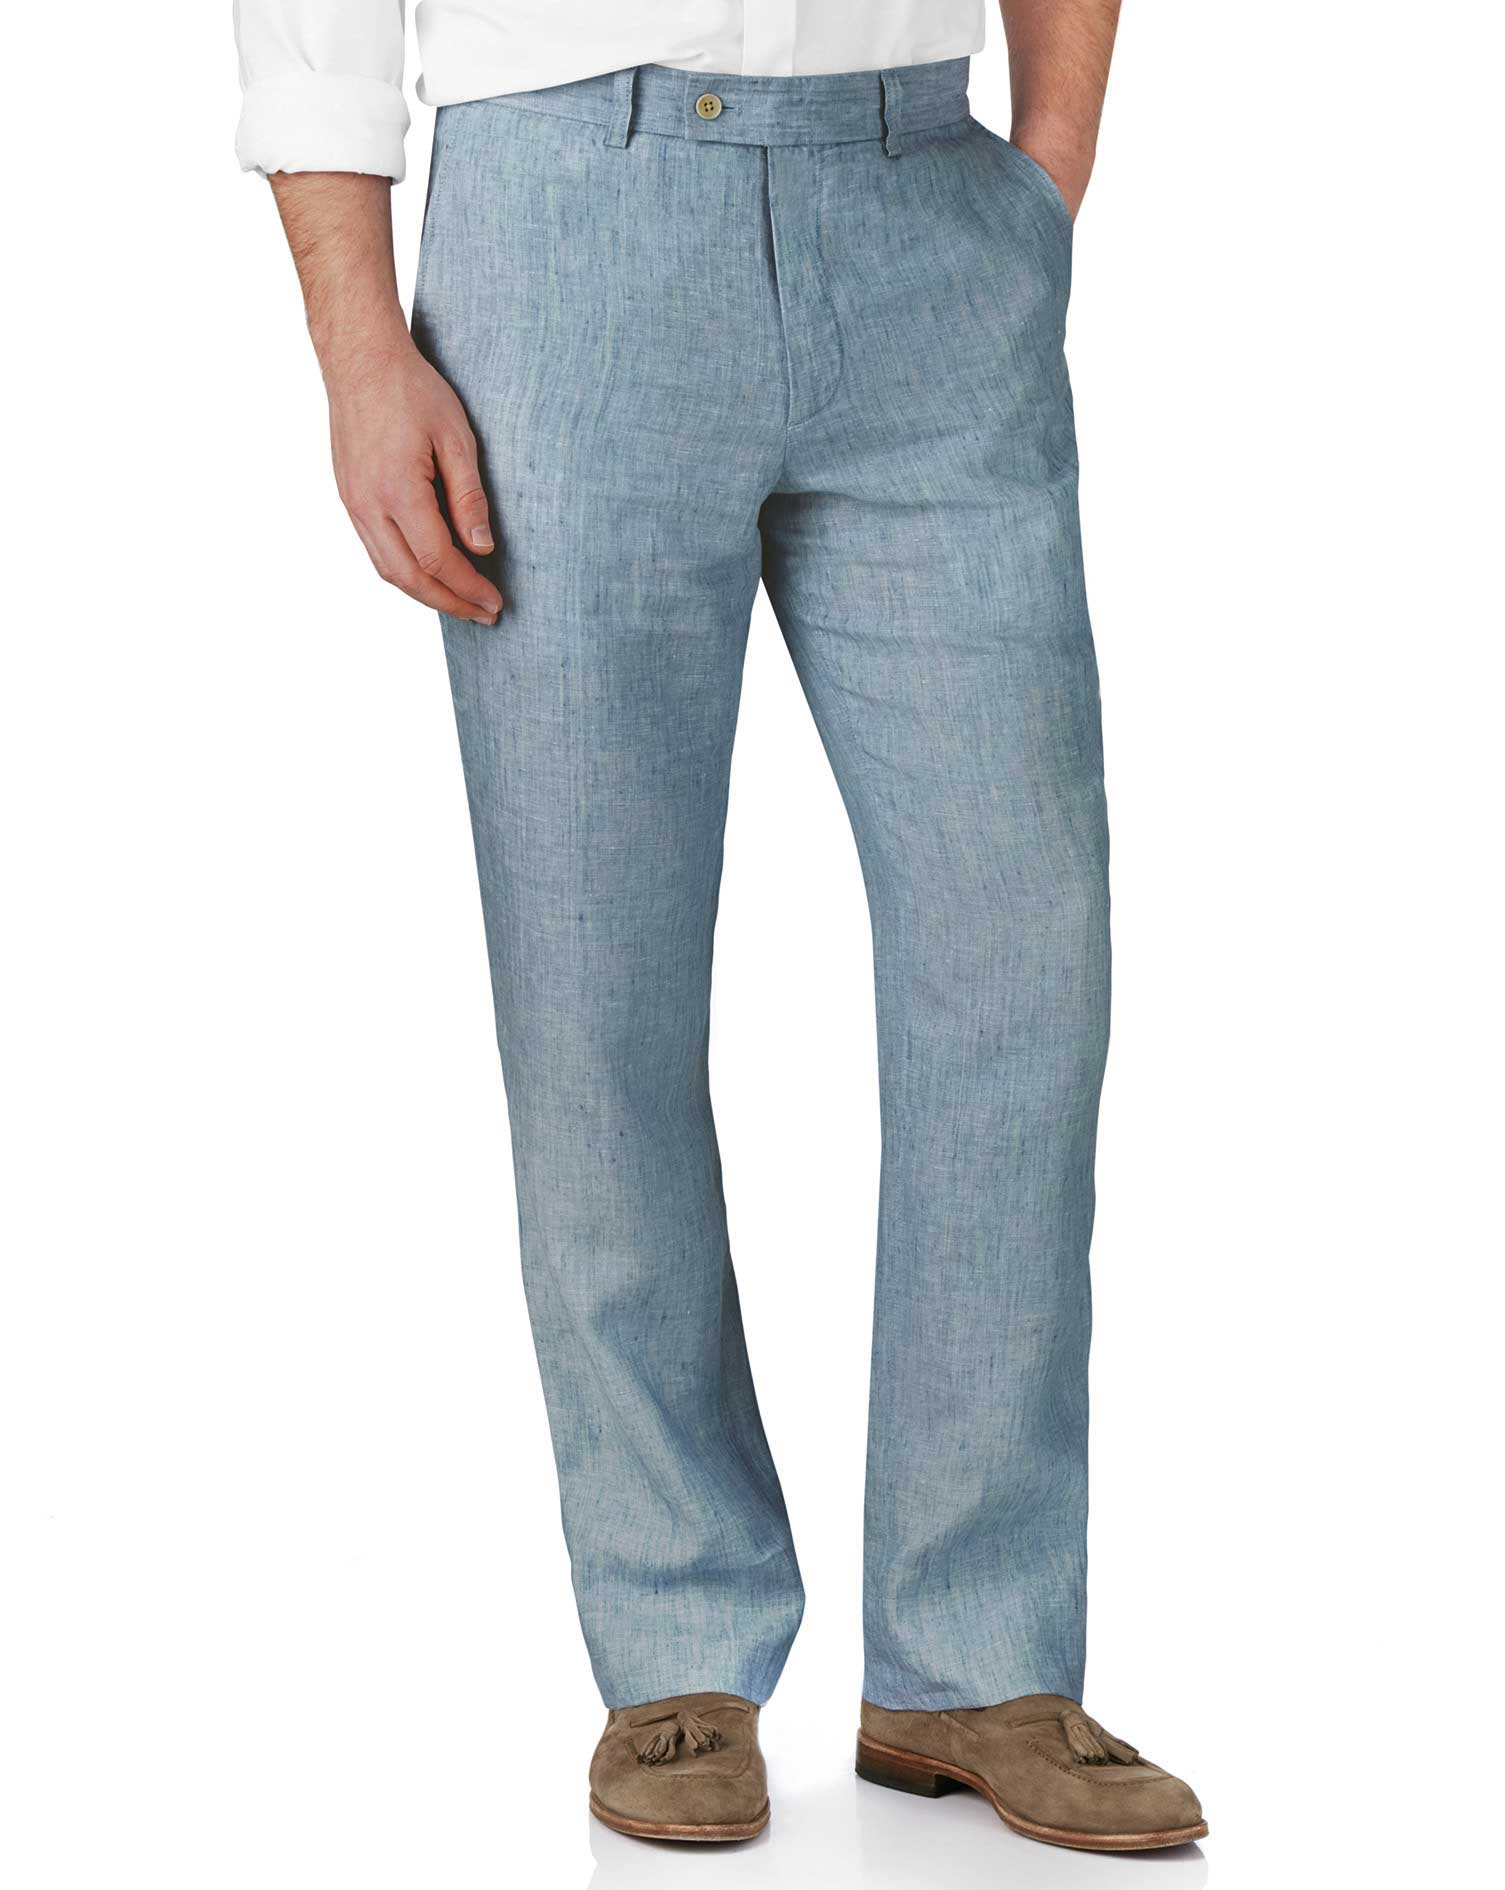 Light Blue Classic Fit Linen Trousers Size W42 L34 by Charles Tyrwhitt